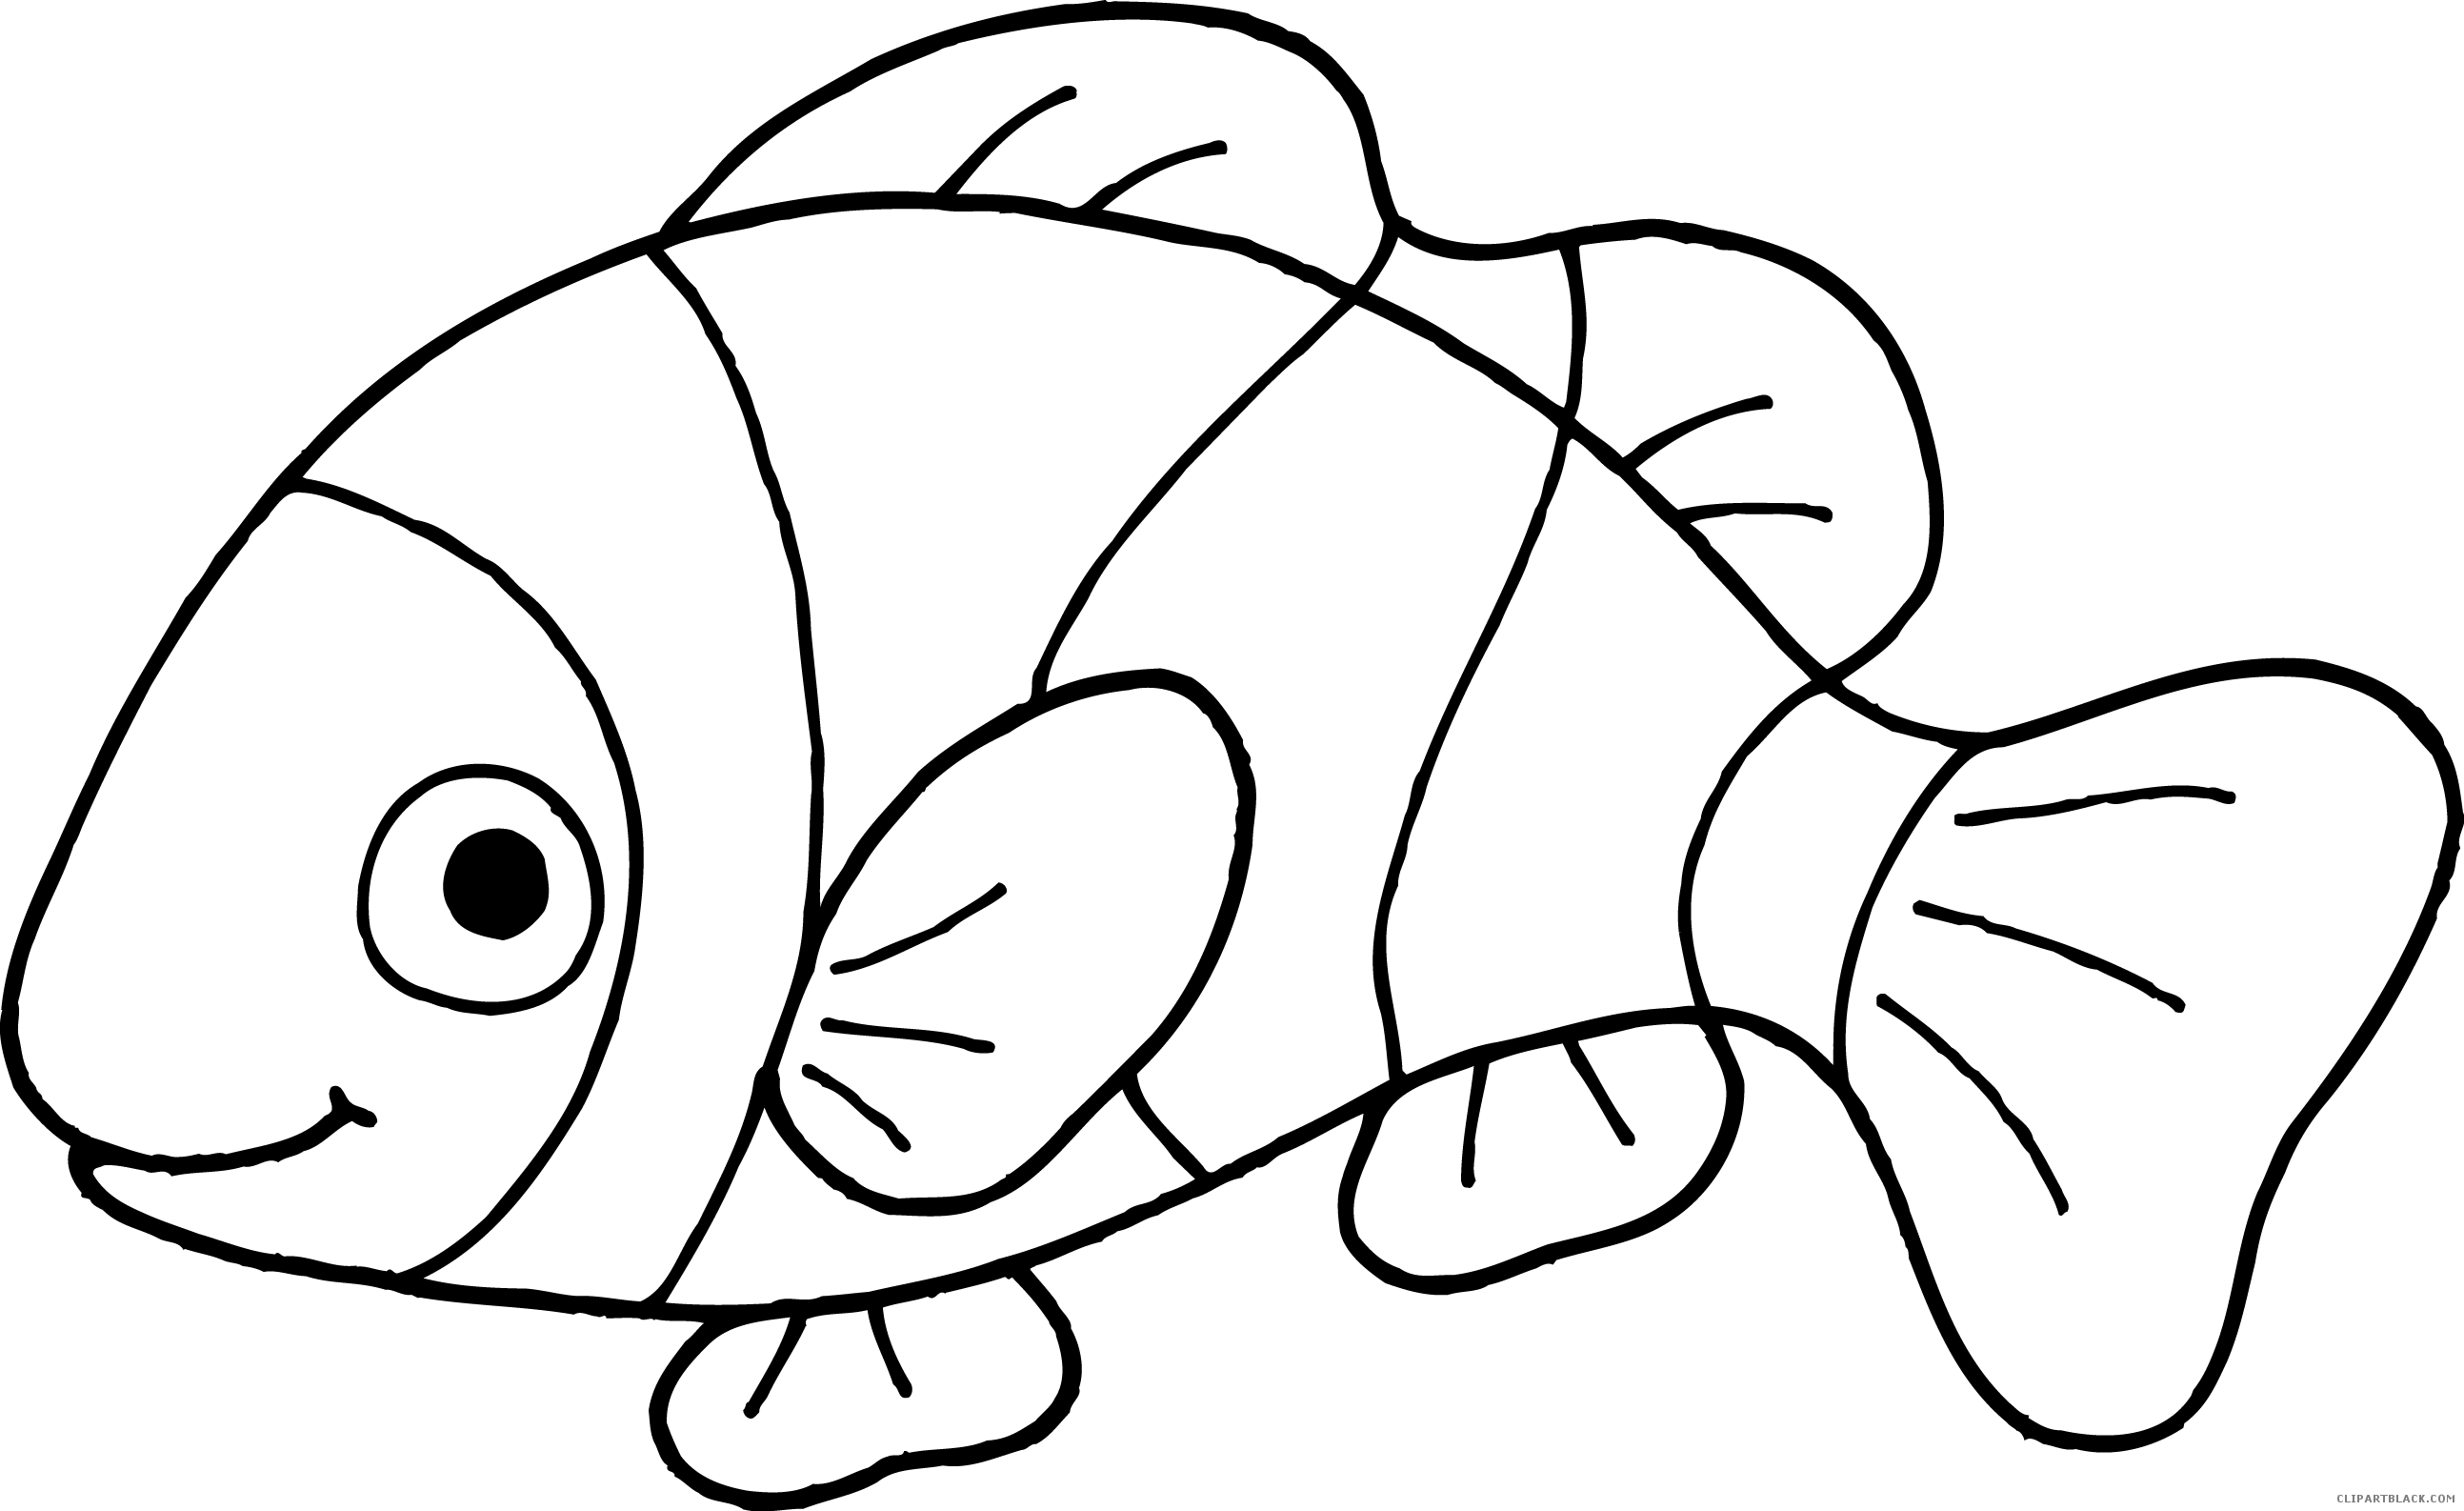 Clown fish clipart black and white picture free Clownfish Clipart - ClipartBlack.com picture free